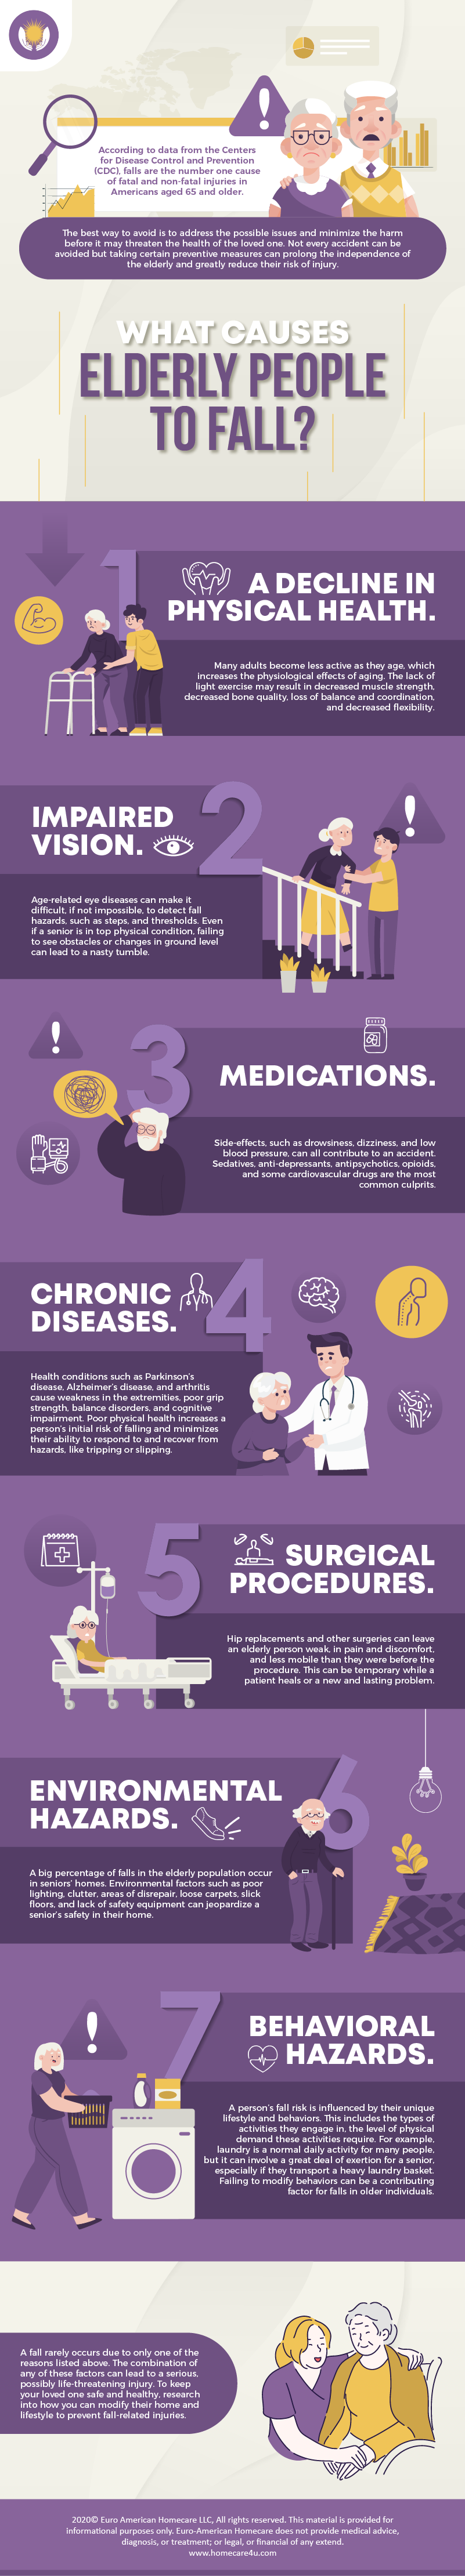 What Causes Elderly People to Fall? #Infographic